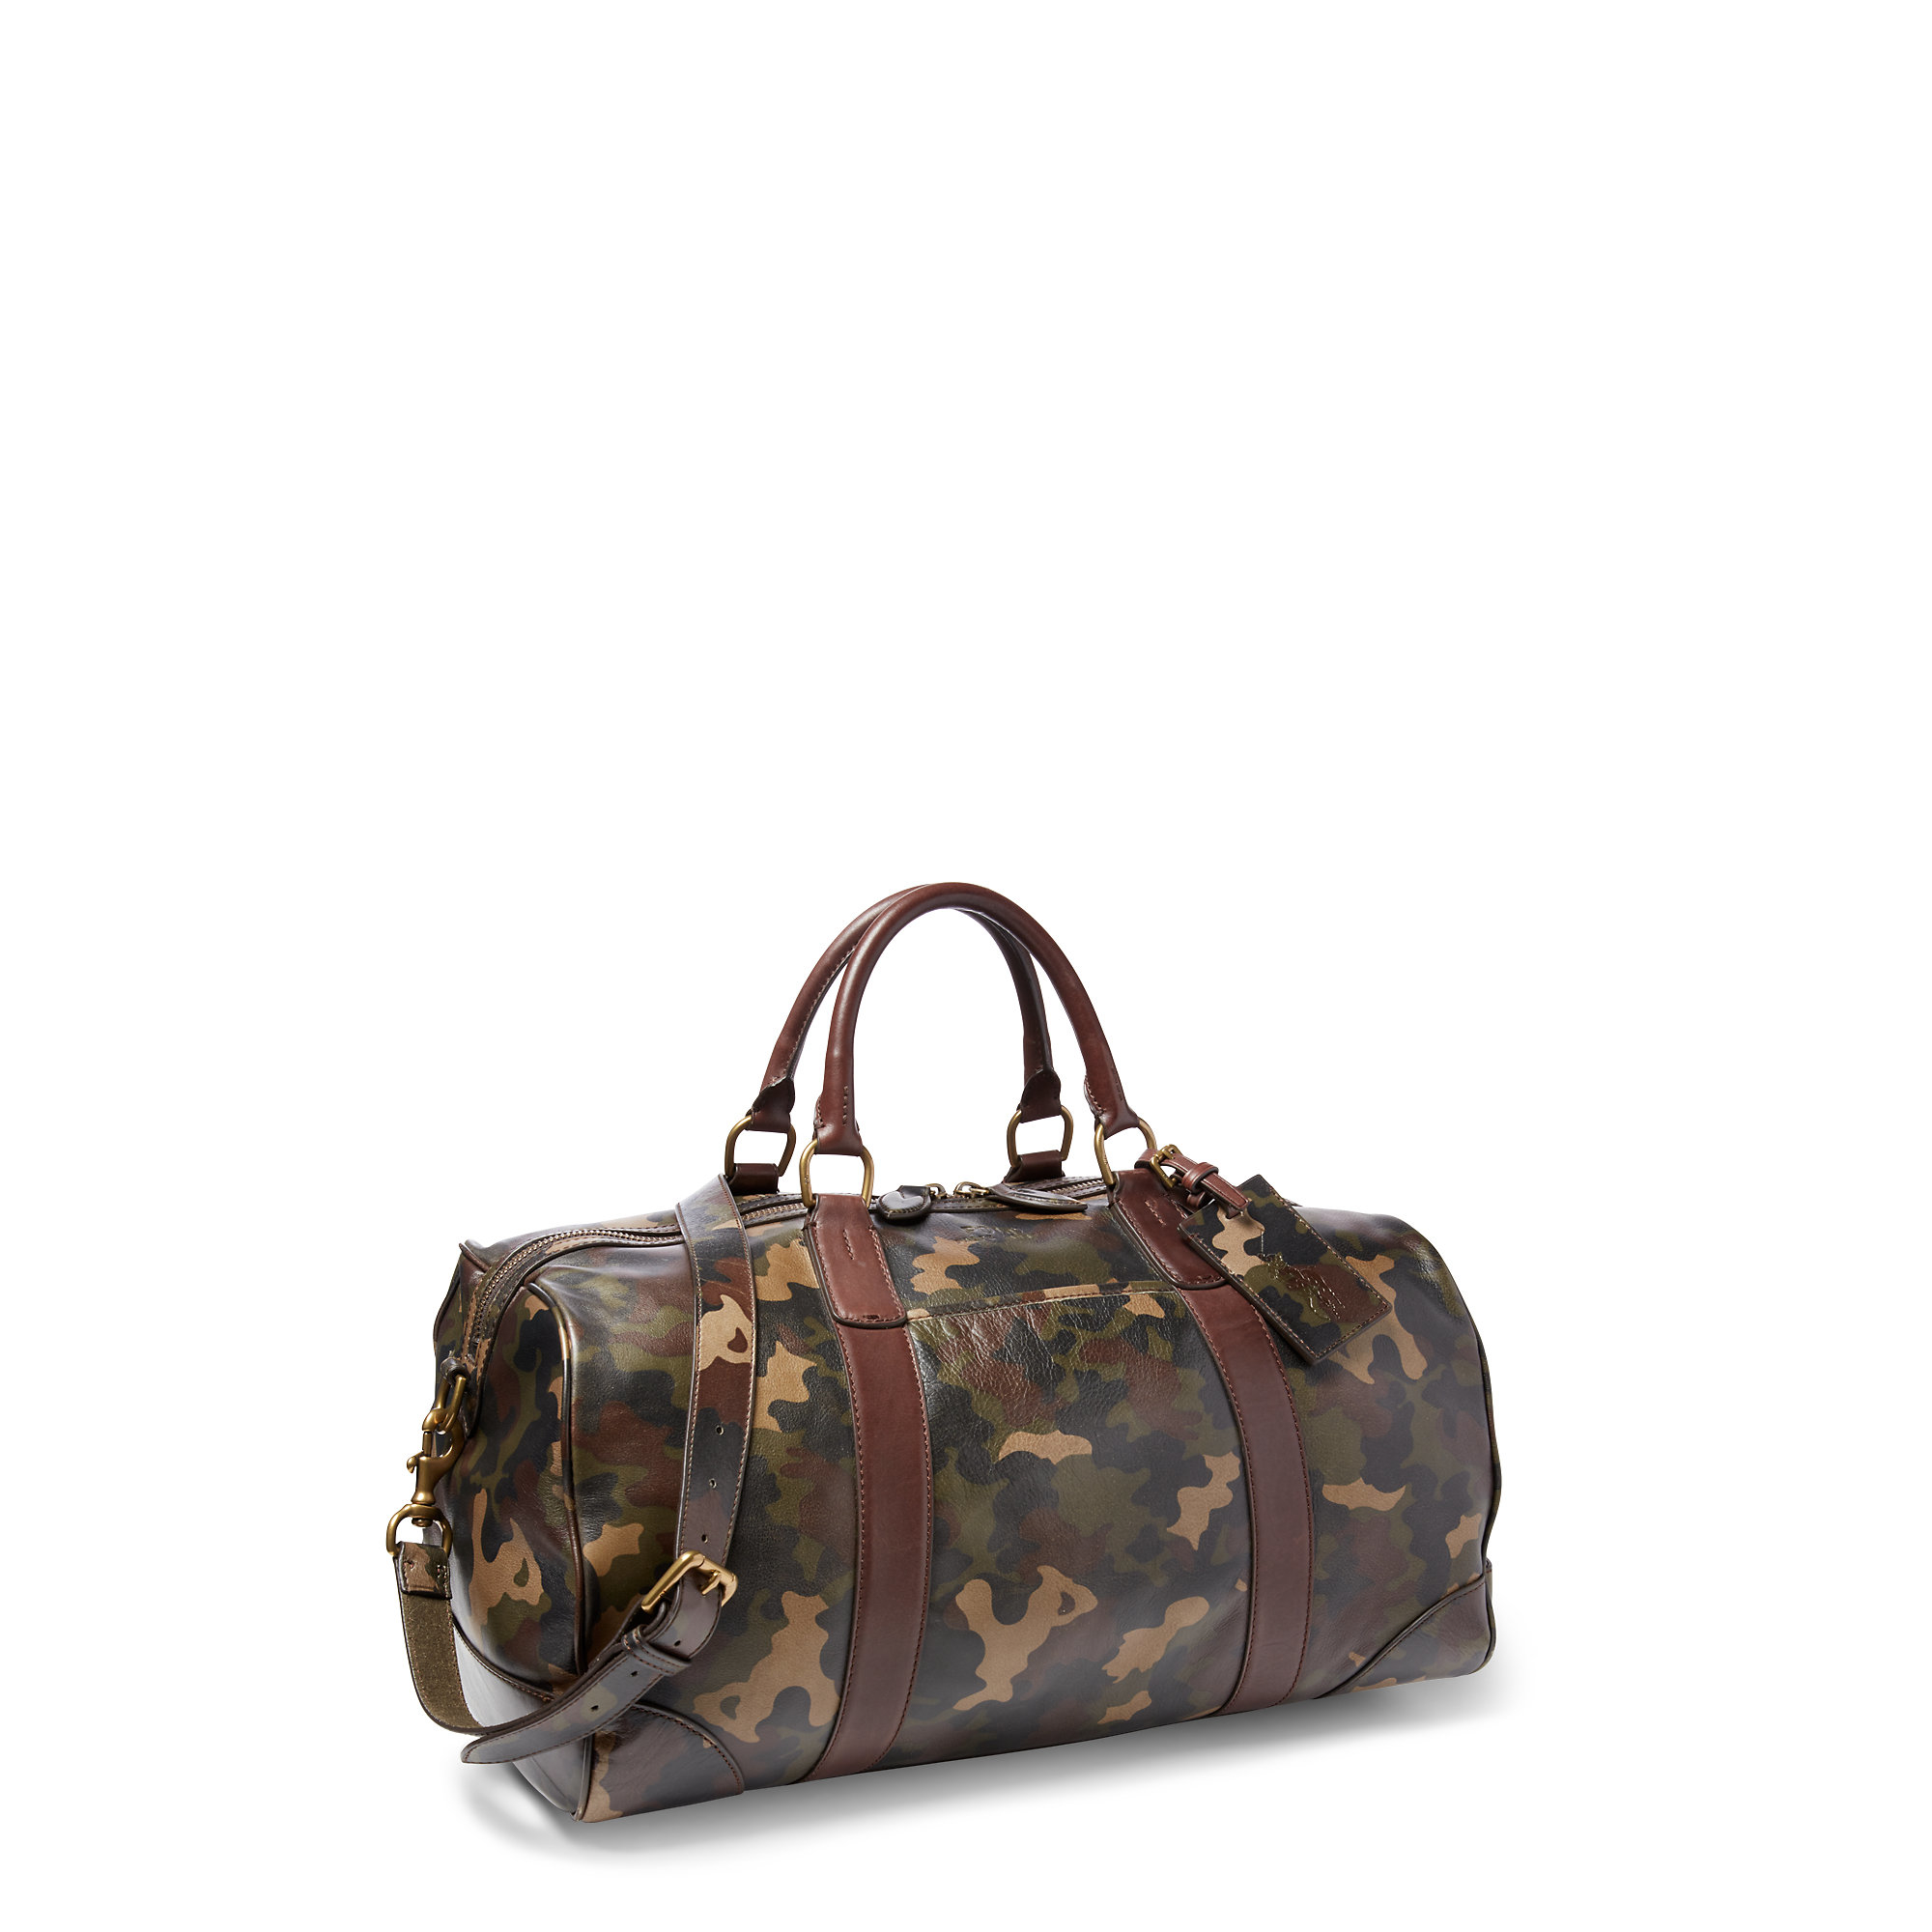 Lyst - Polo Ralph Lauren Camouflage Leather Duffel Bag in Gray for Men abb6c9c079437